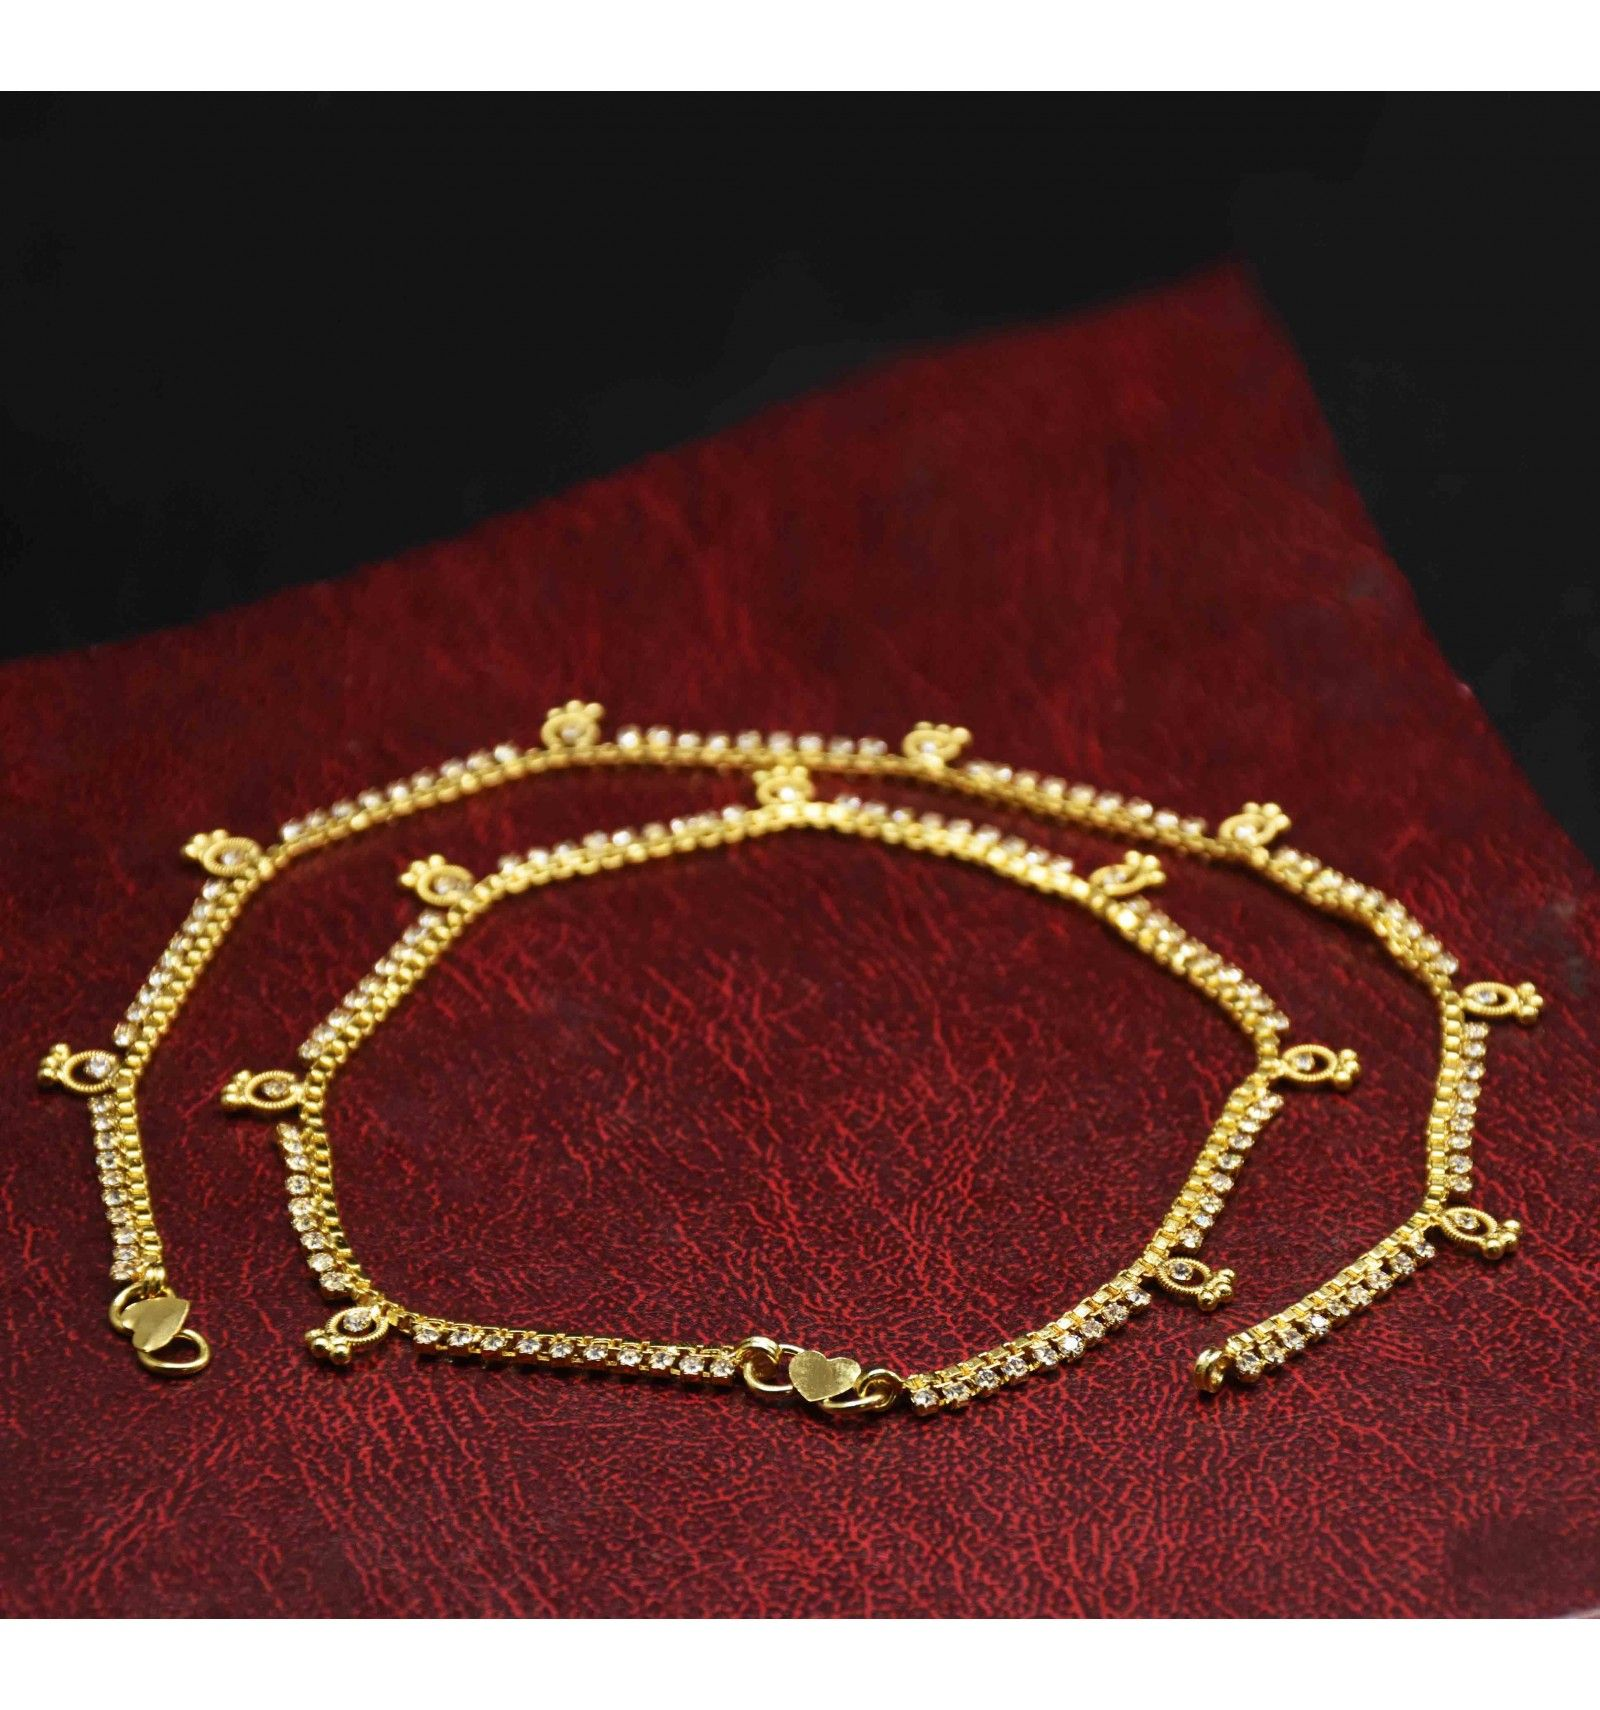 item designer fashion women gold from wholesale ankle foot vintage in anklets leg chain s plated bracelet jewelry anklet bracelets items brand color new